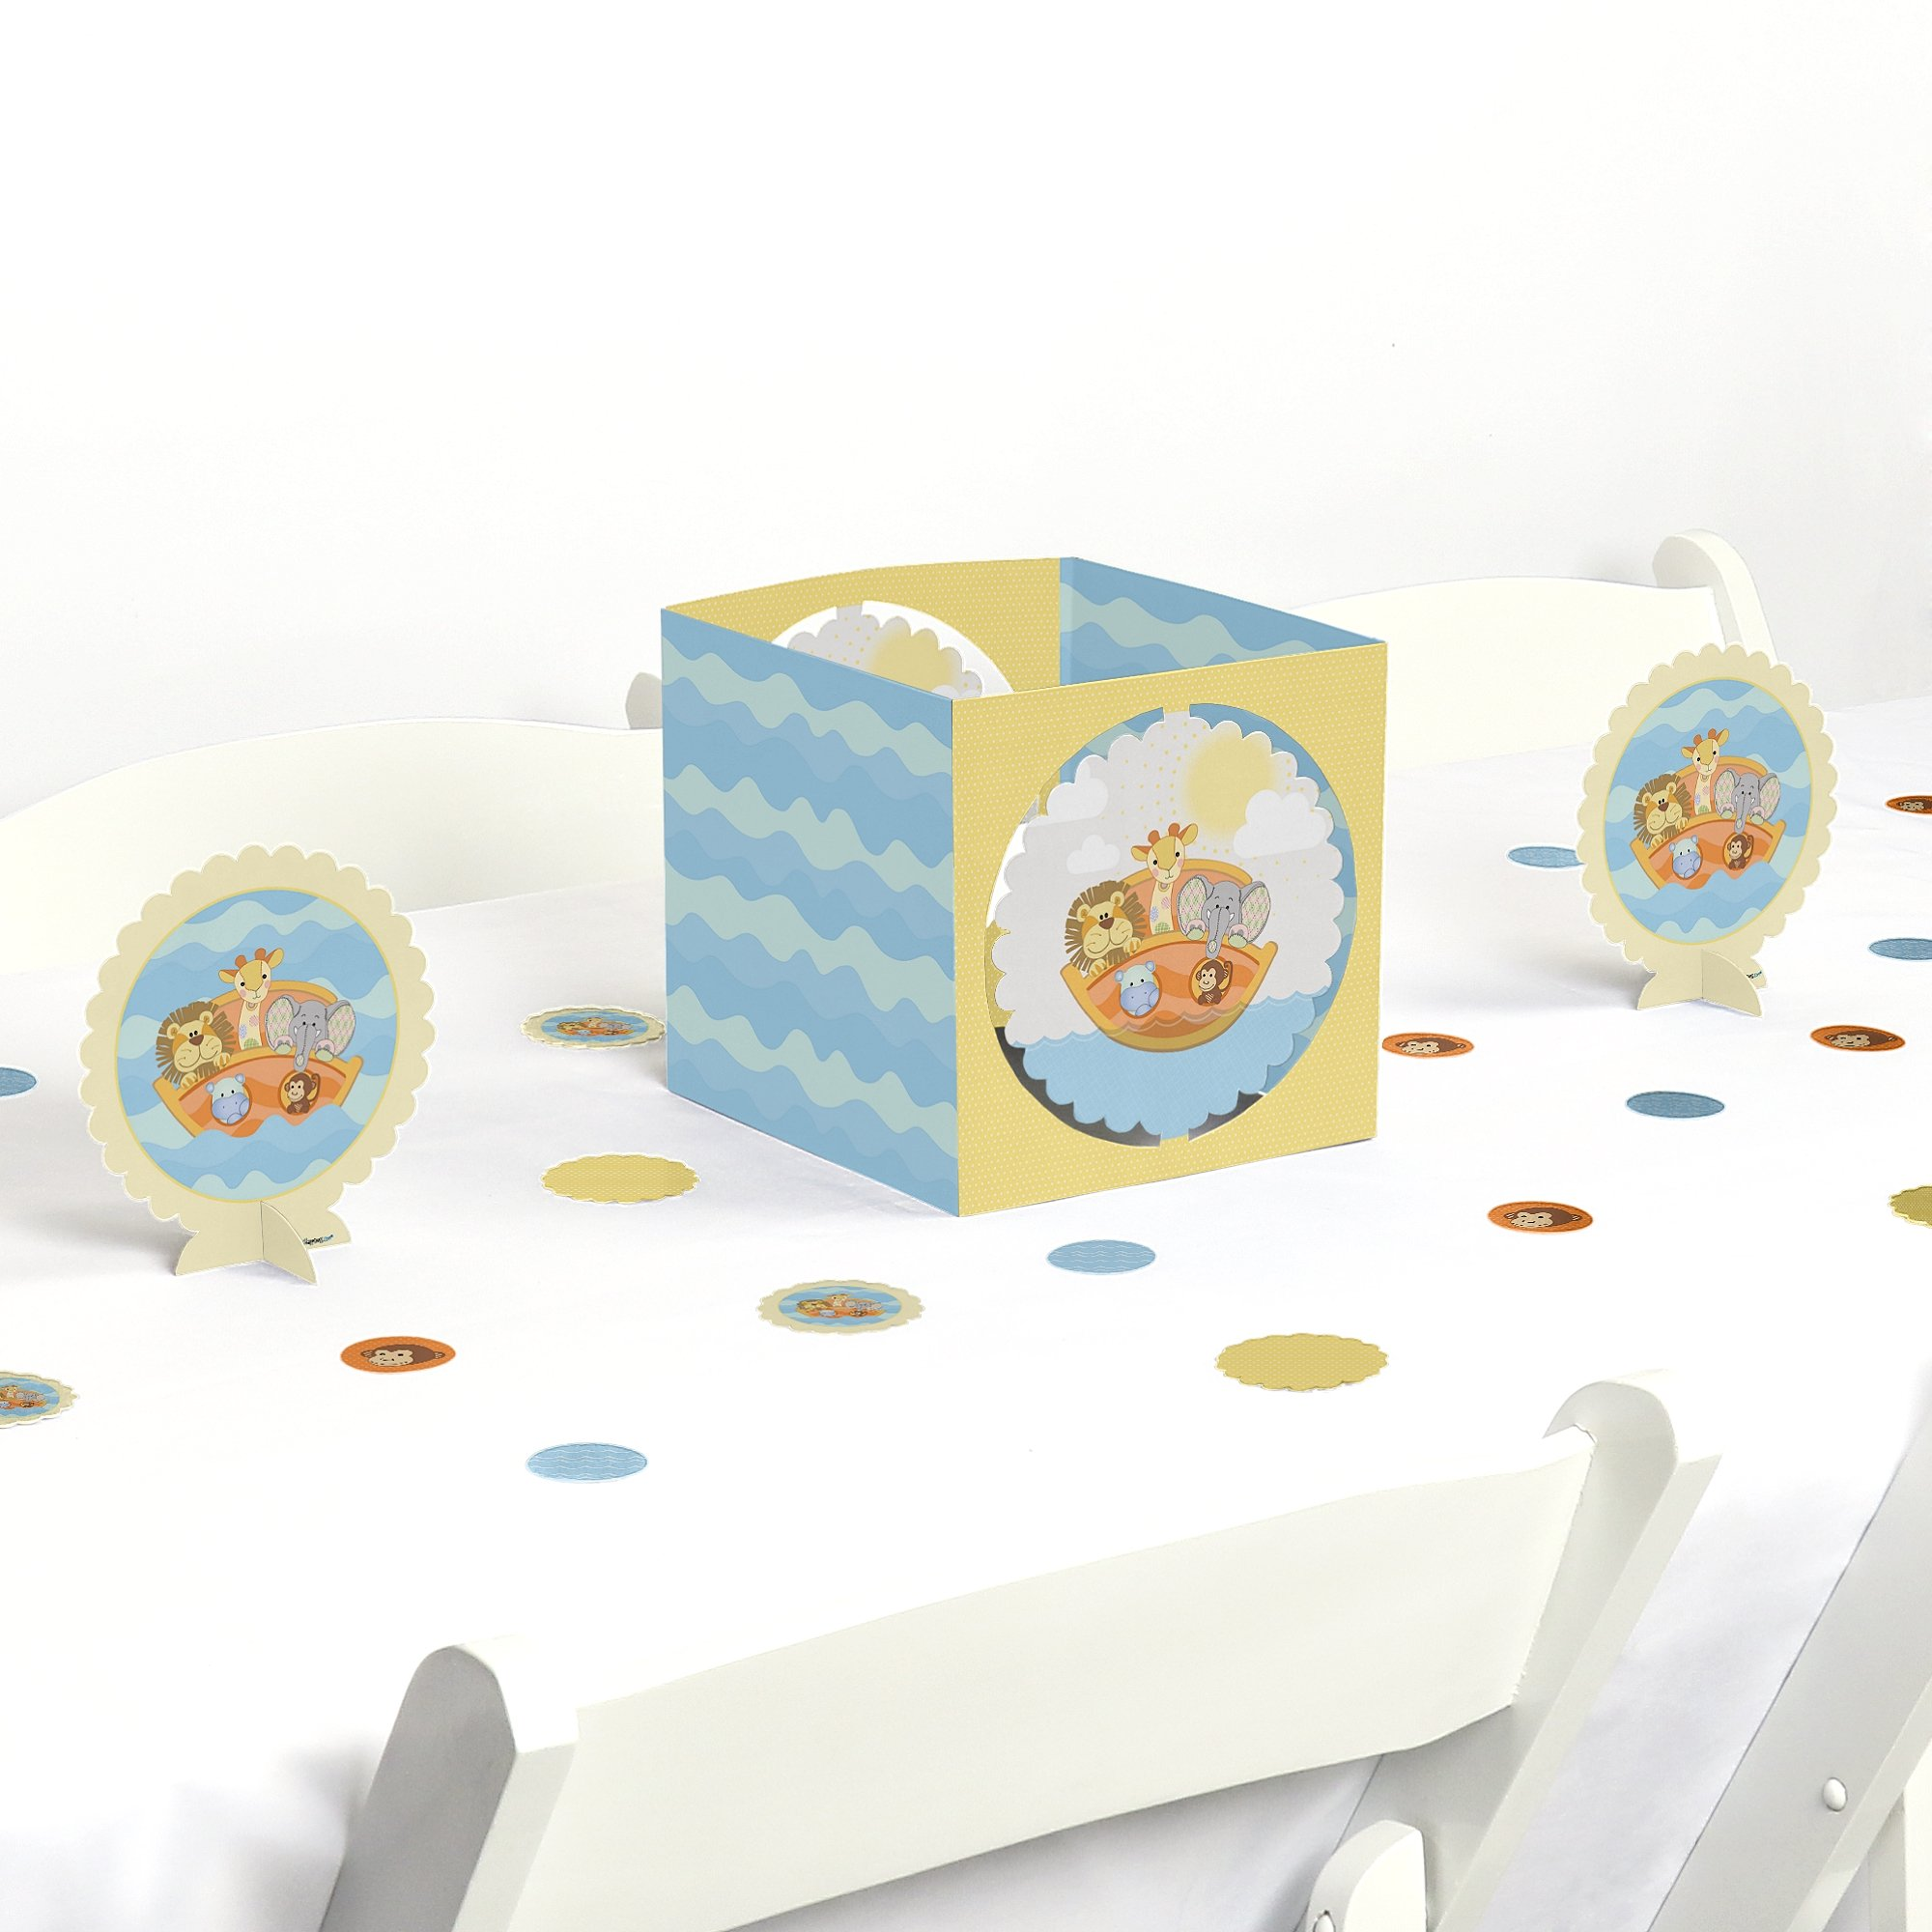 Noah's Ark - Baby Shower or Birthday Party Centerpiece & Table Decoration Kit by Big Dot of Happiness